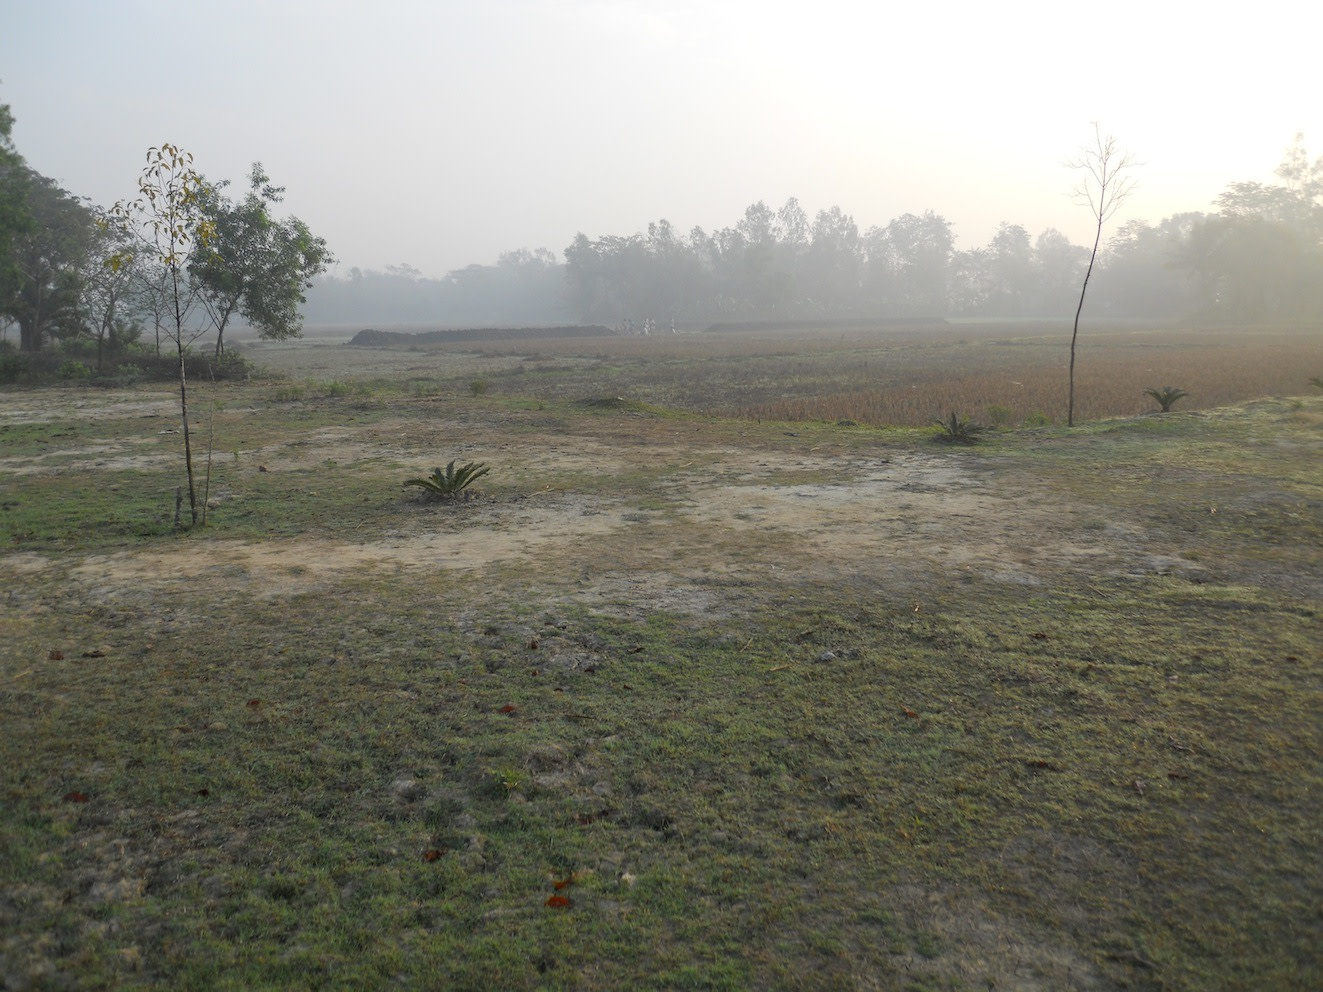 Another view of the rice fields at dawn for your viewing pleasure.